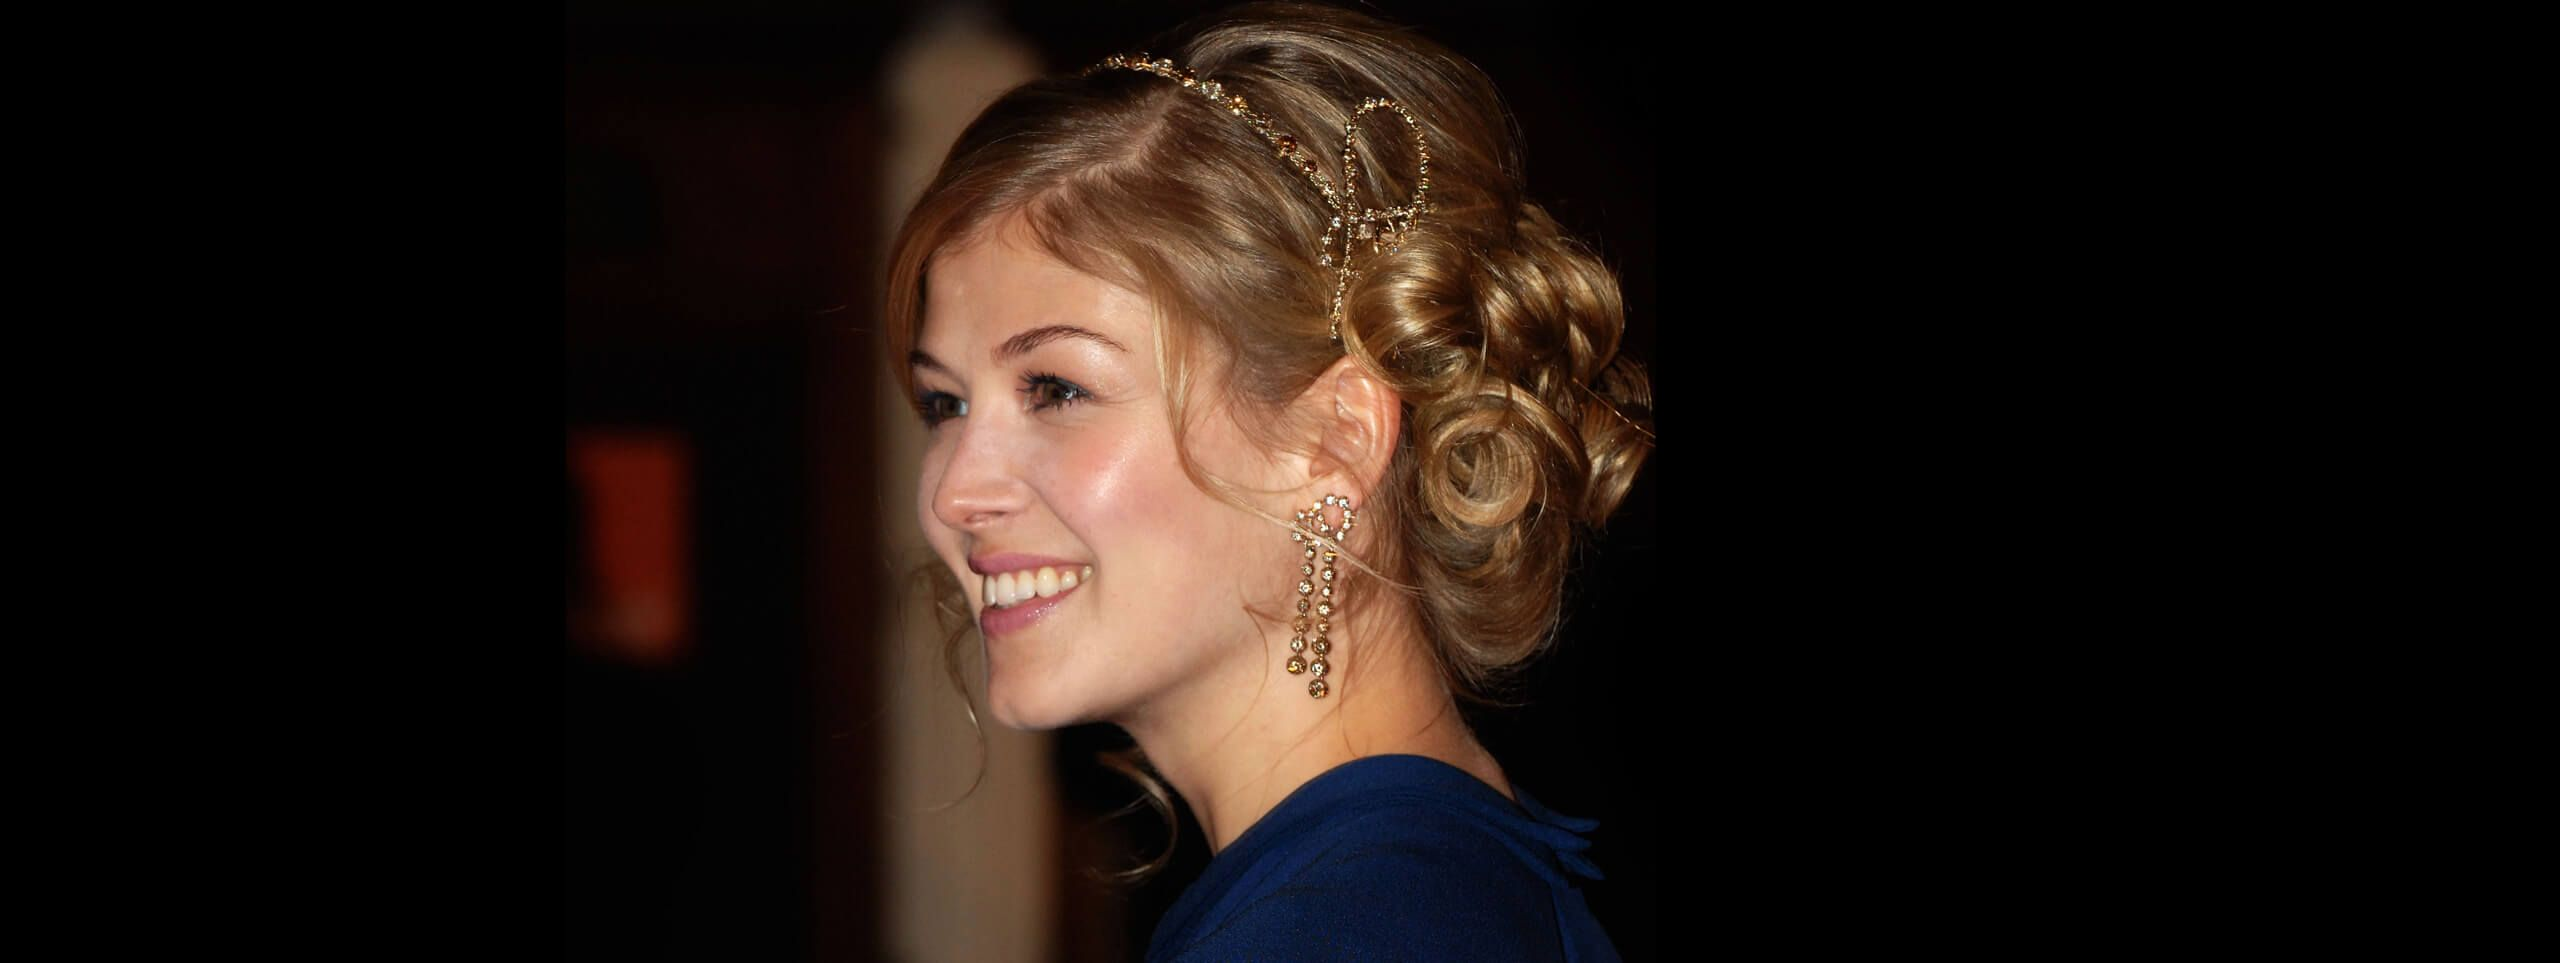 Model with hairstyle accesorised with jewelry